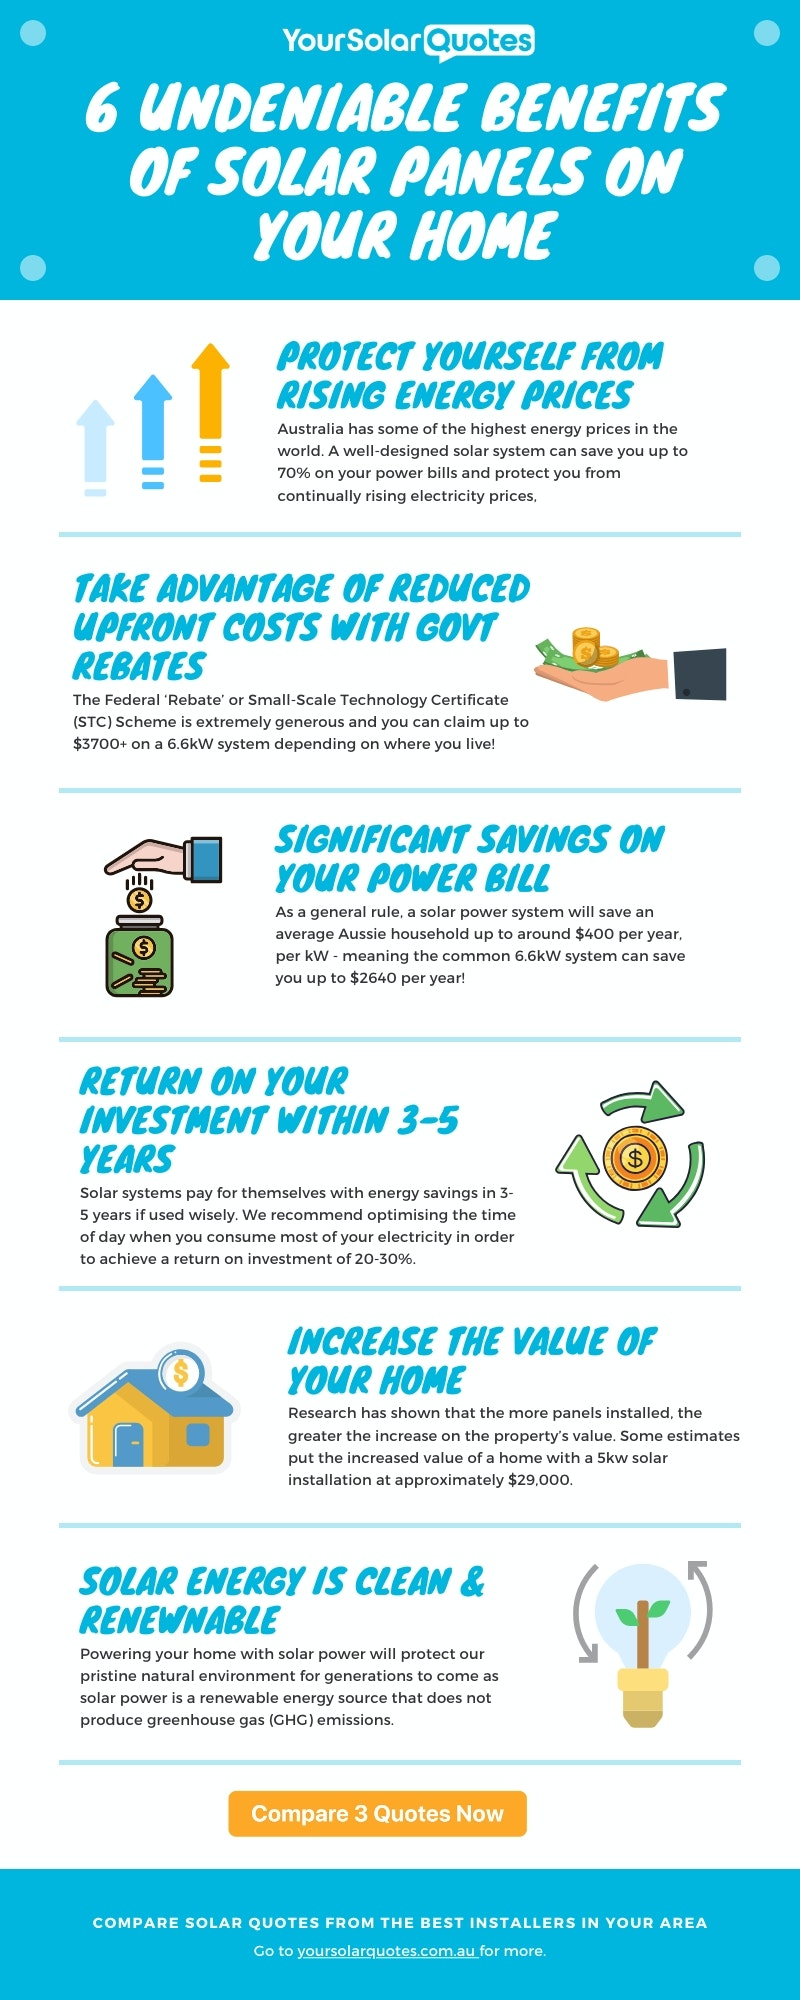 benefits of solar panels infographic reasons are avoiding power increase, savings, rebates, return on investment, increase value of home, good for environment